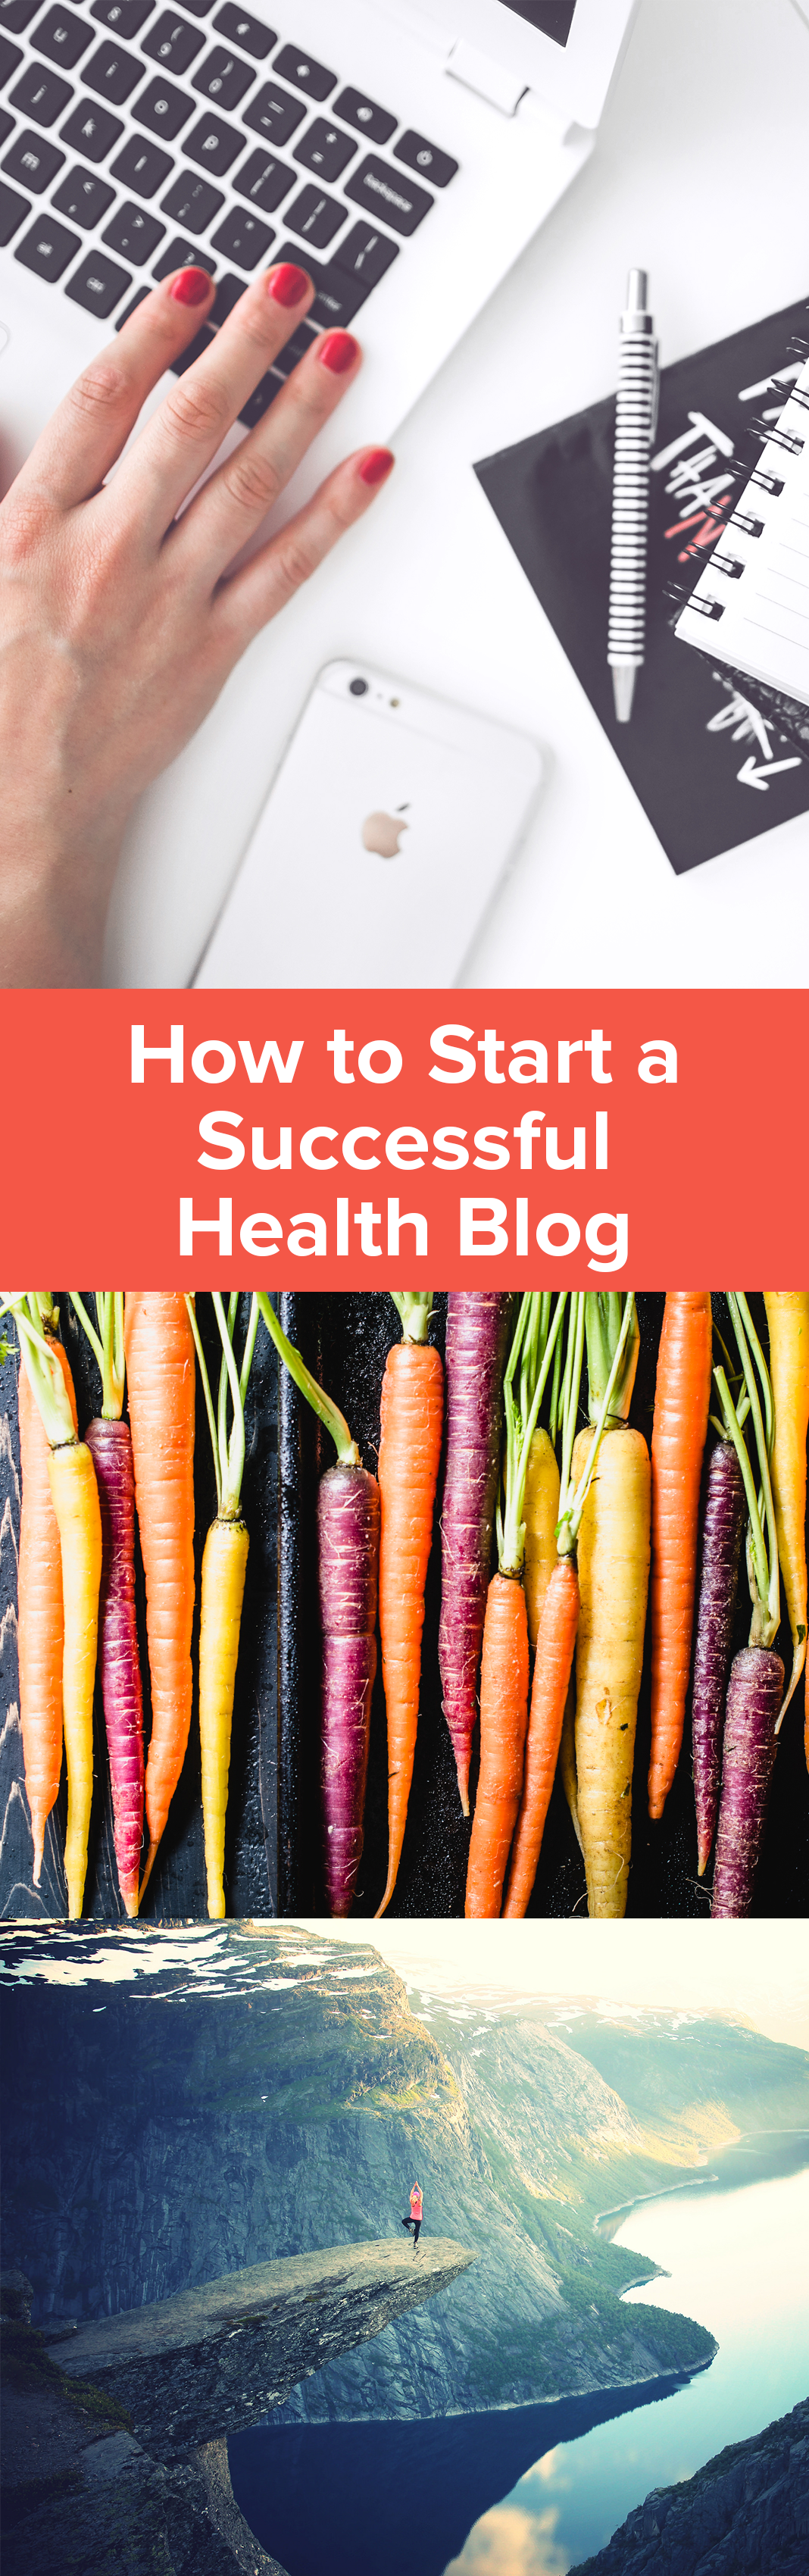 How to Start a Successful Health Blog | StupidEasyPaleo.com